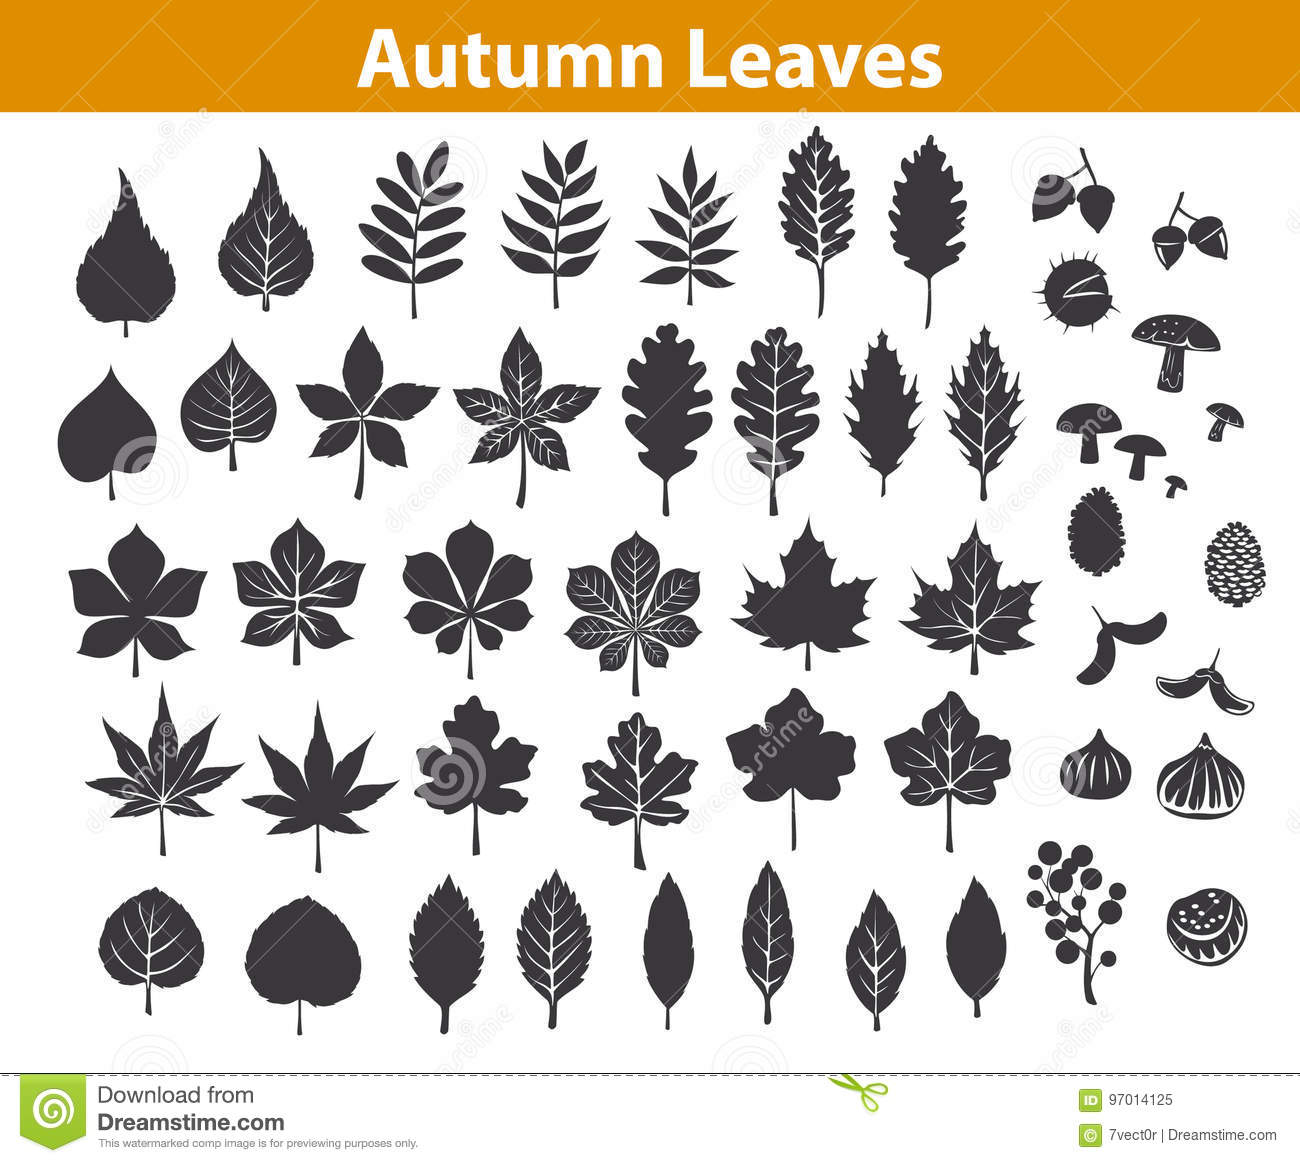 Autumn fall leaves silhouettes set in black color